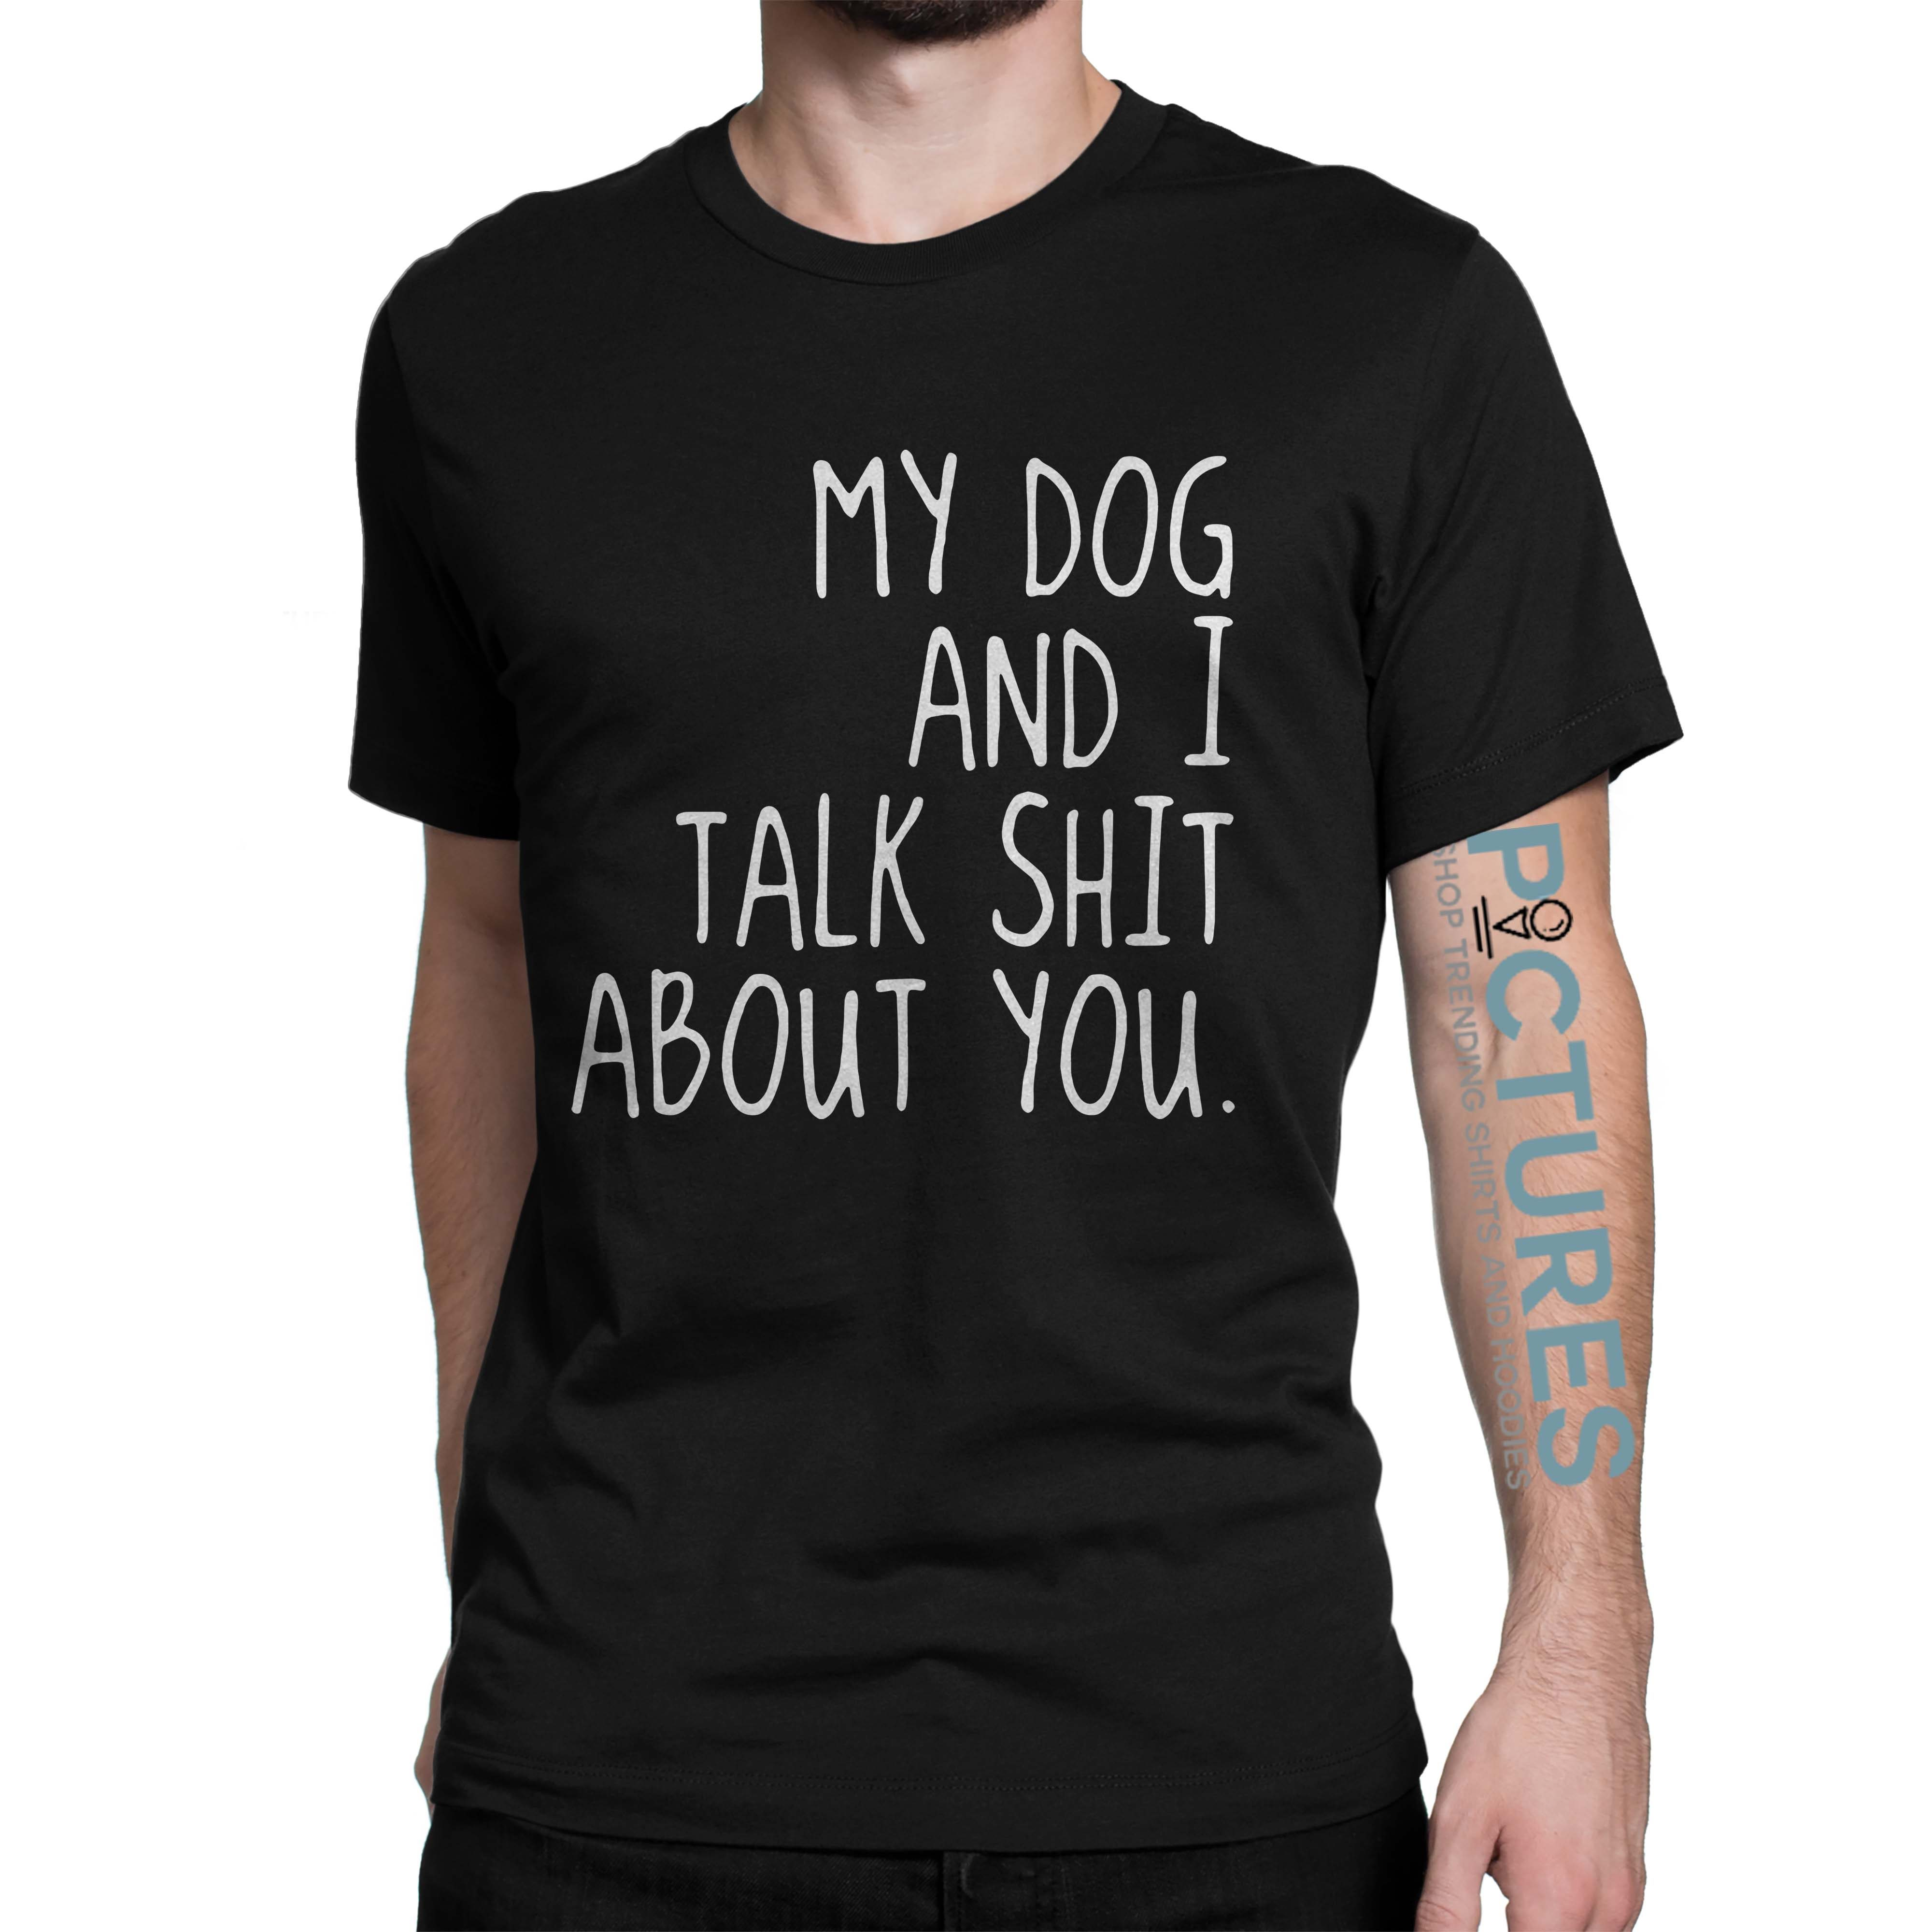 Official My dog and I talk shit about you women's shirt